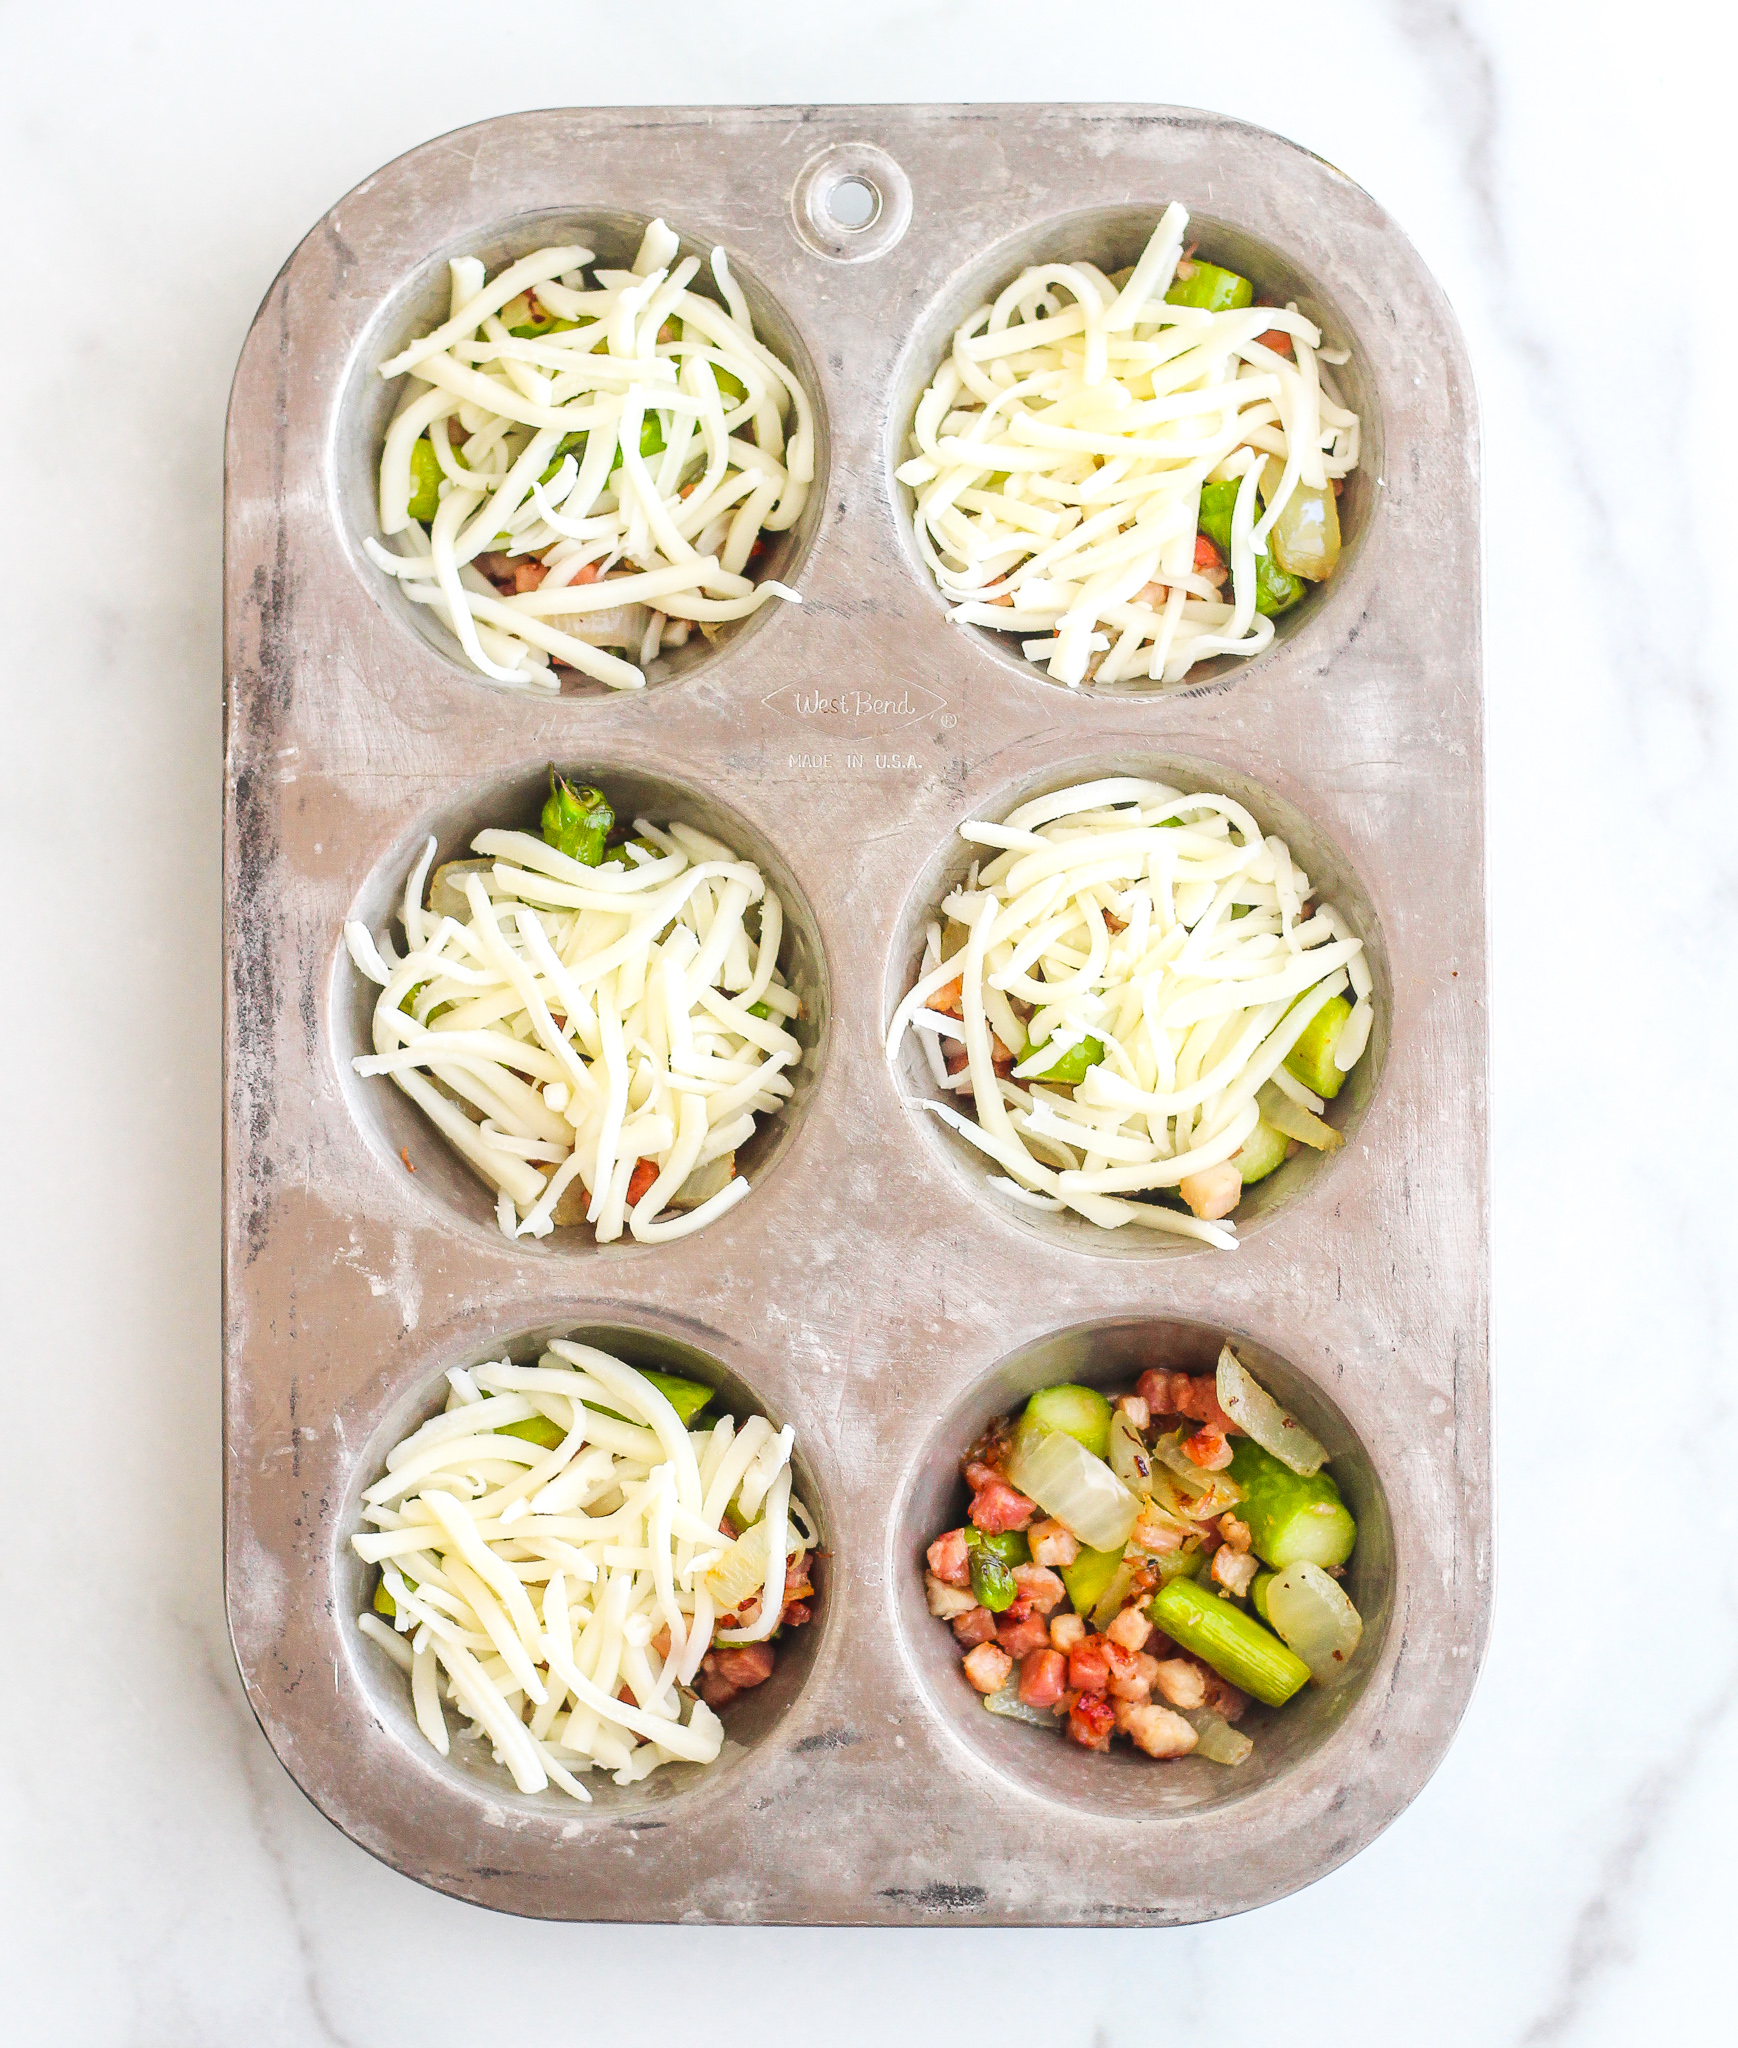 silver muffin tin filled with pancetta and asparagus topped with shredded cheese